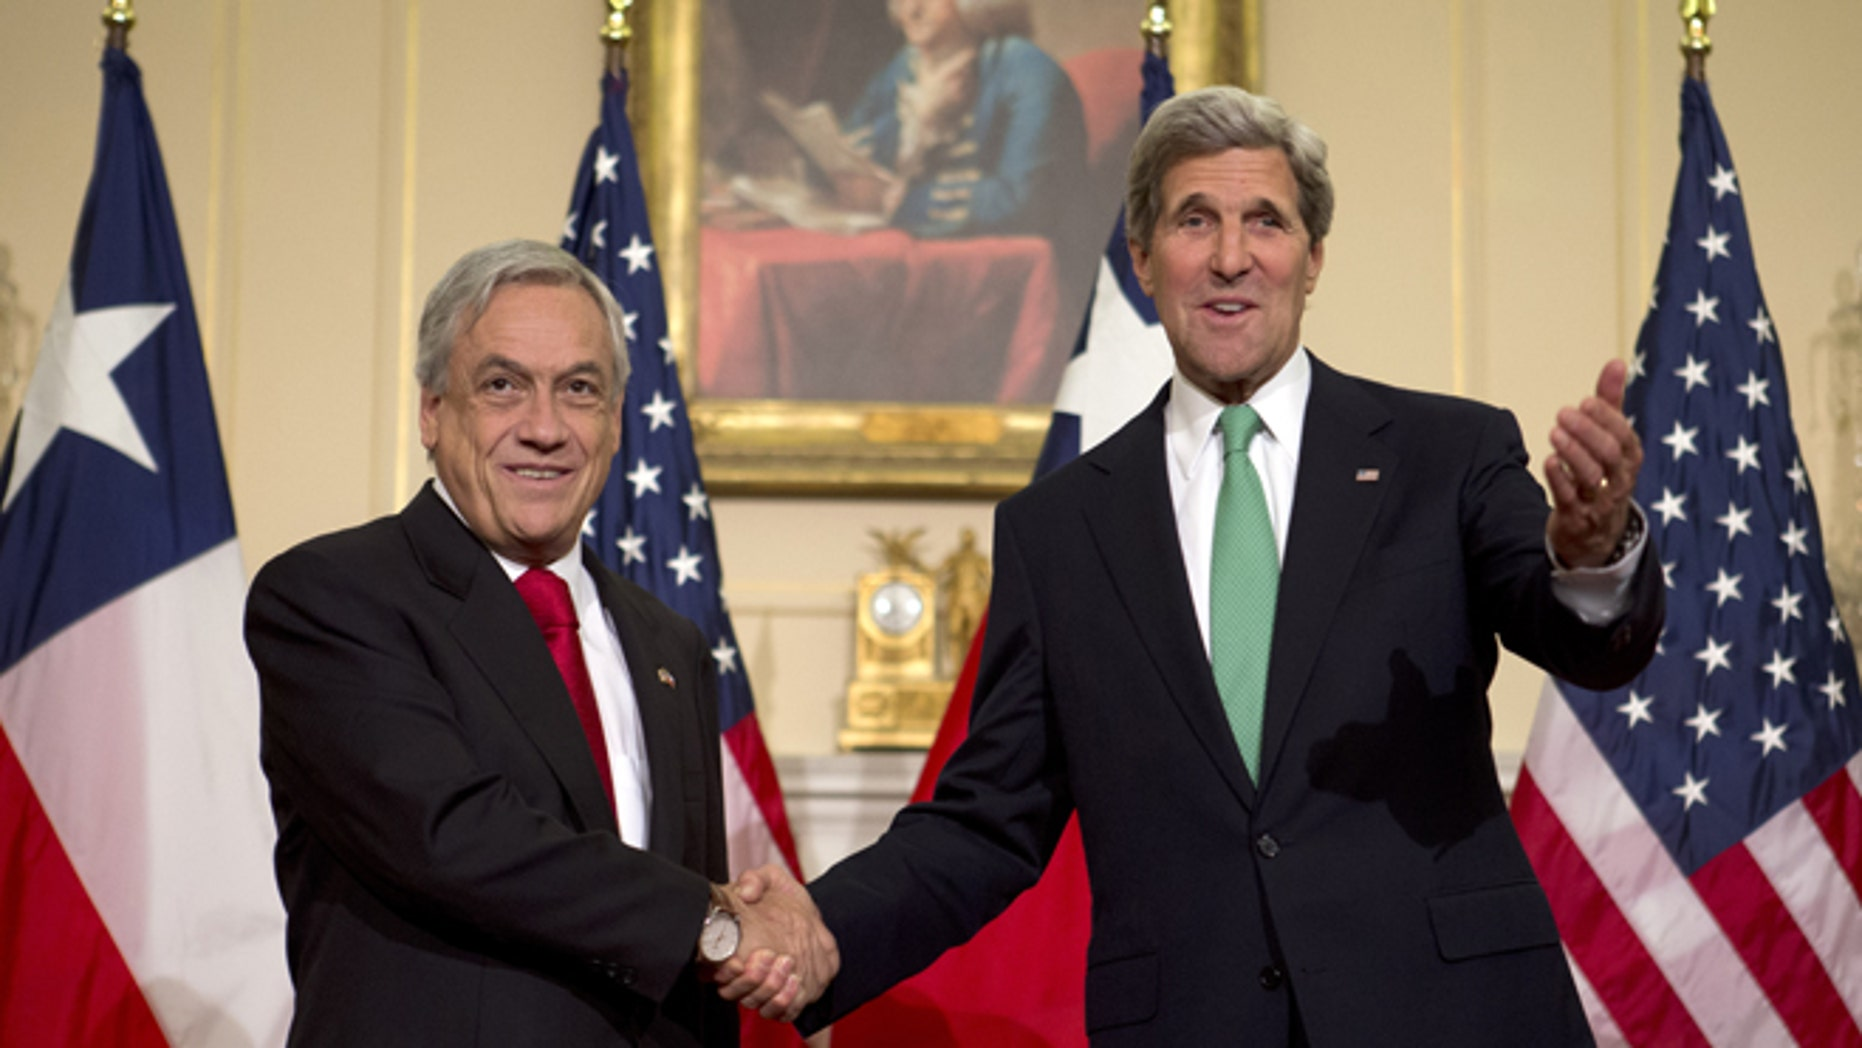 Secretary of State John Kerry gestures as he shakes hands with Chile's President Sebastian Pinera during a short appearance before the media, Monday, June 3, 2013, at the State Department in Washington. (AP Photo/Jacquelyn Martin)